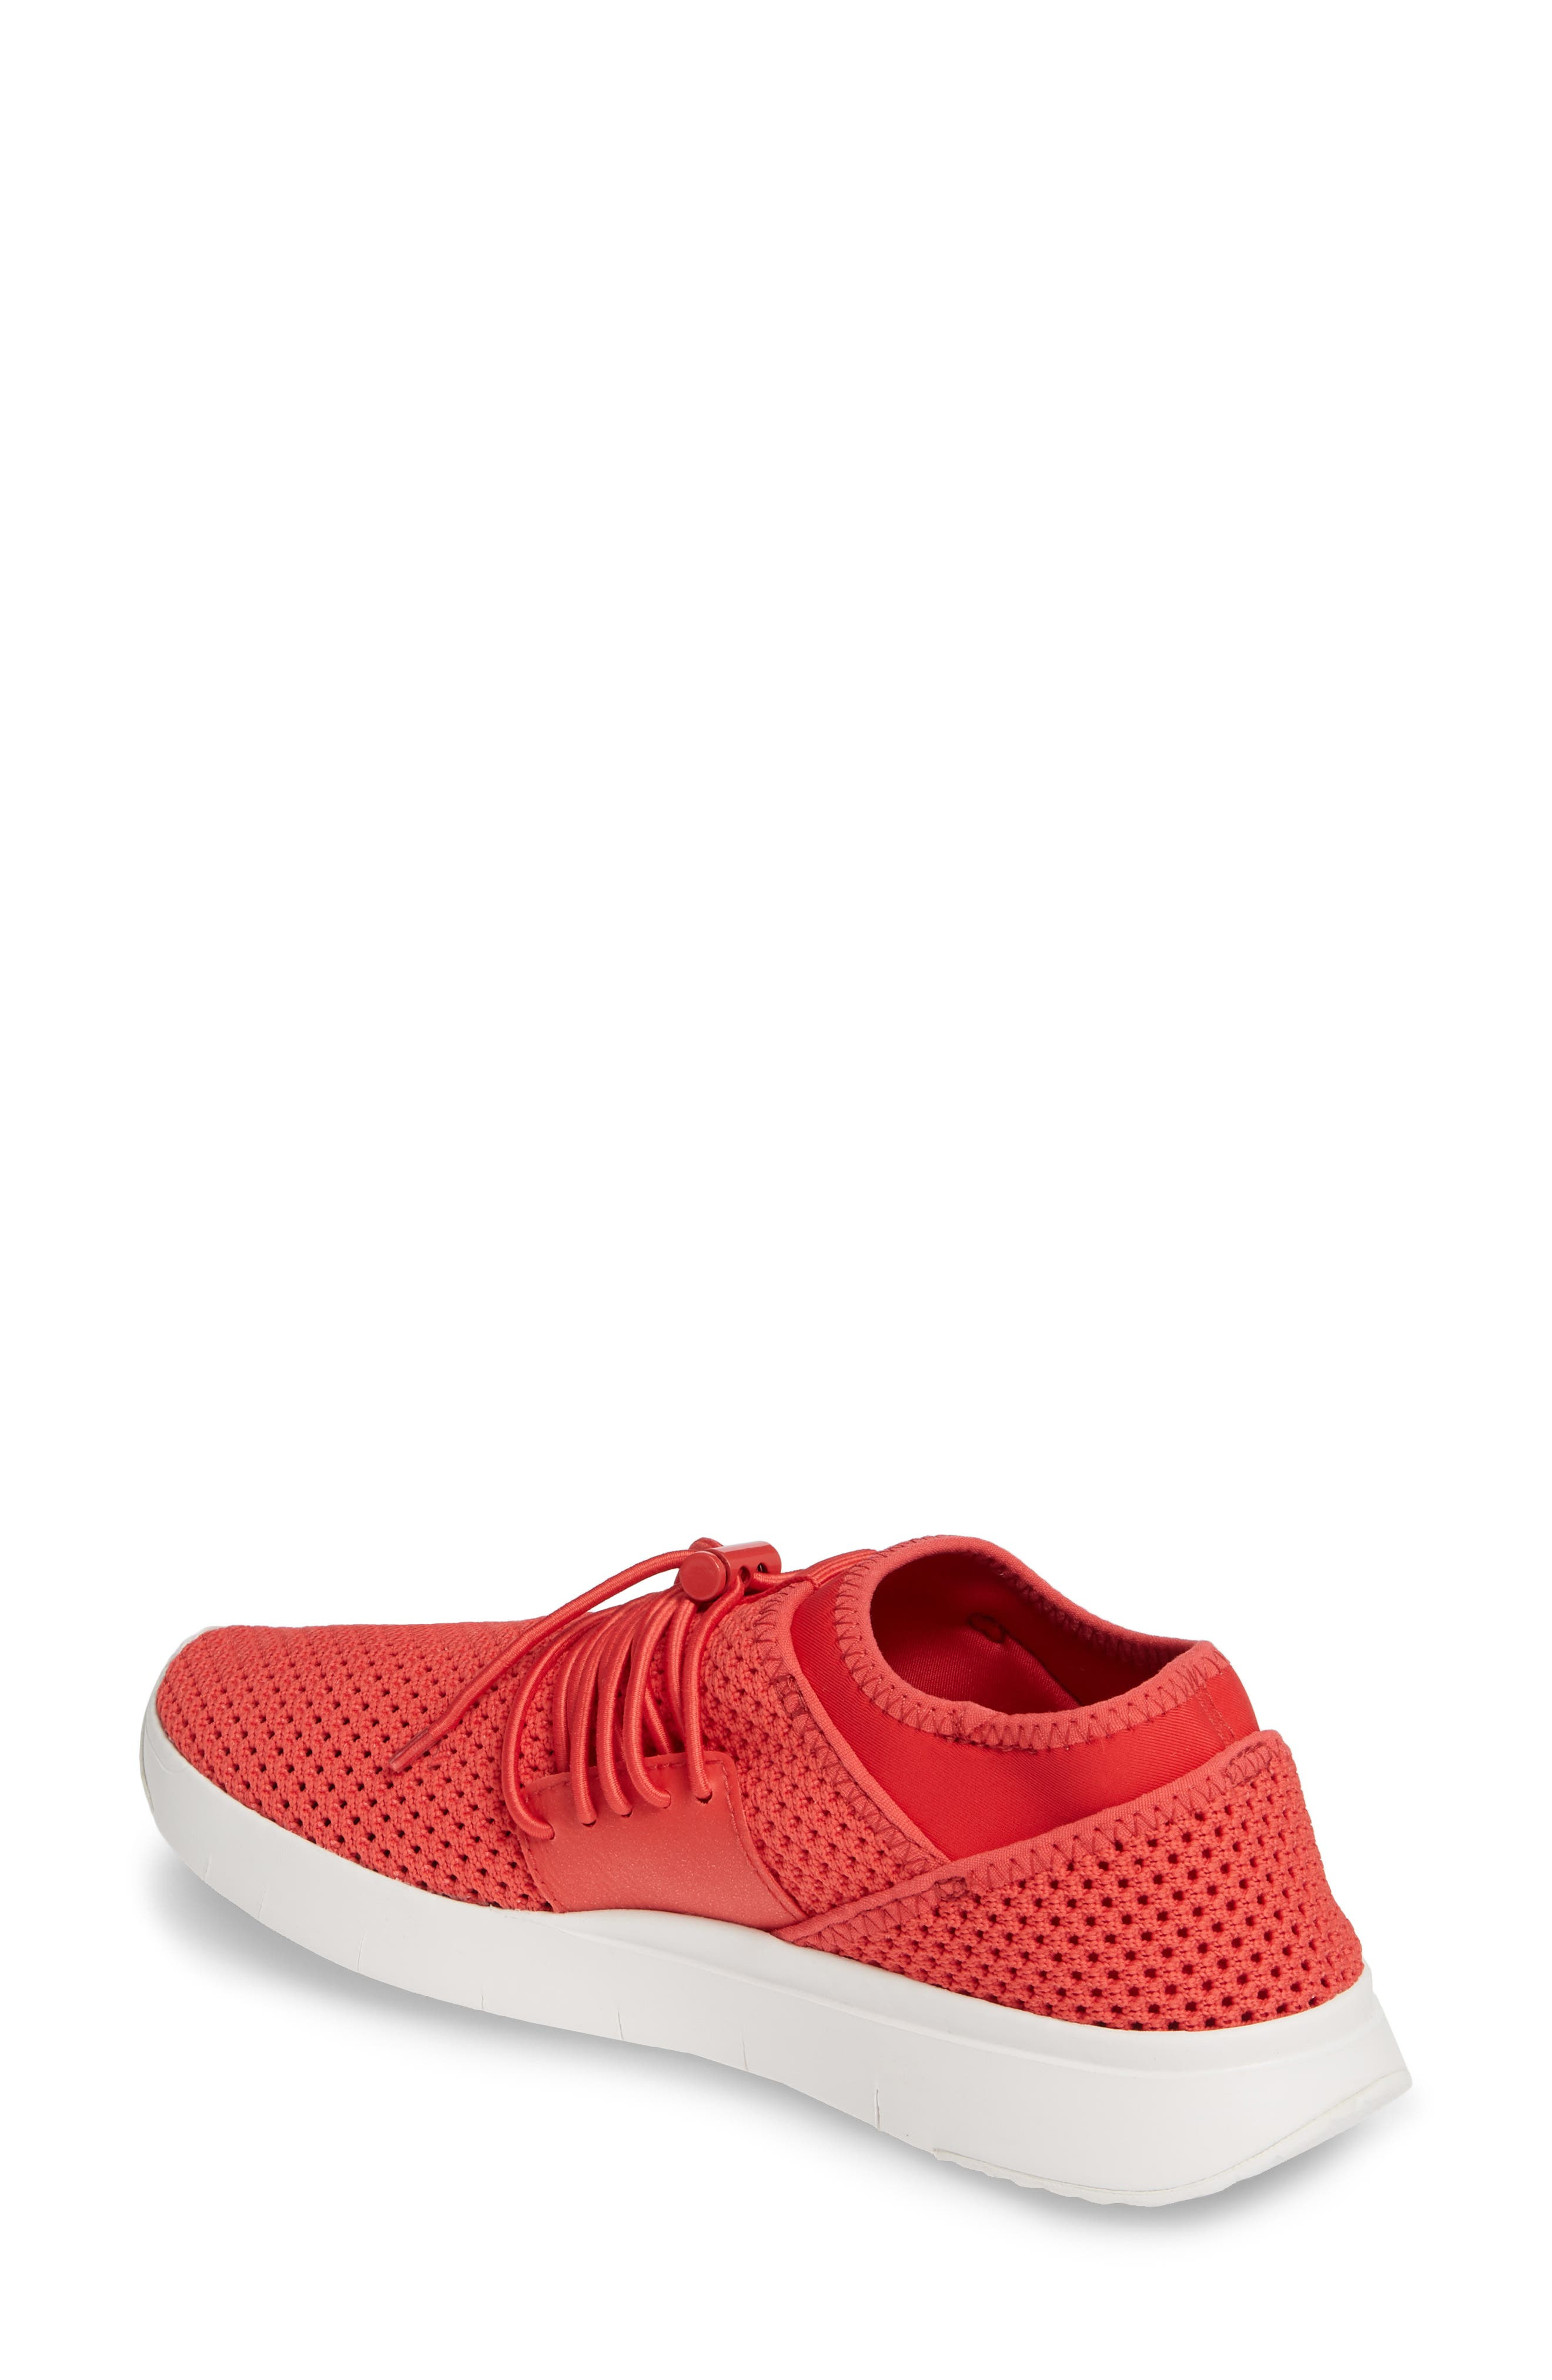 FITFLOP, Airmesh Sneaker, Alternate thumbnail 2, color, PASSION RED